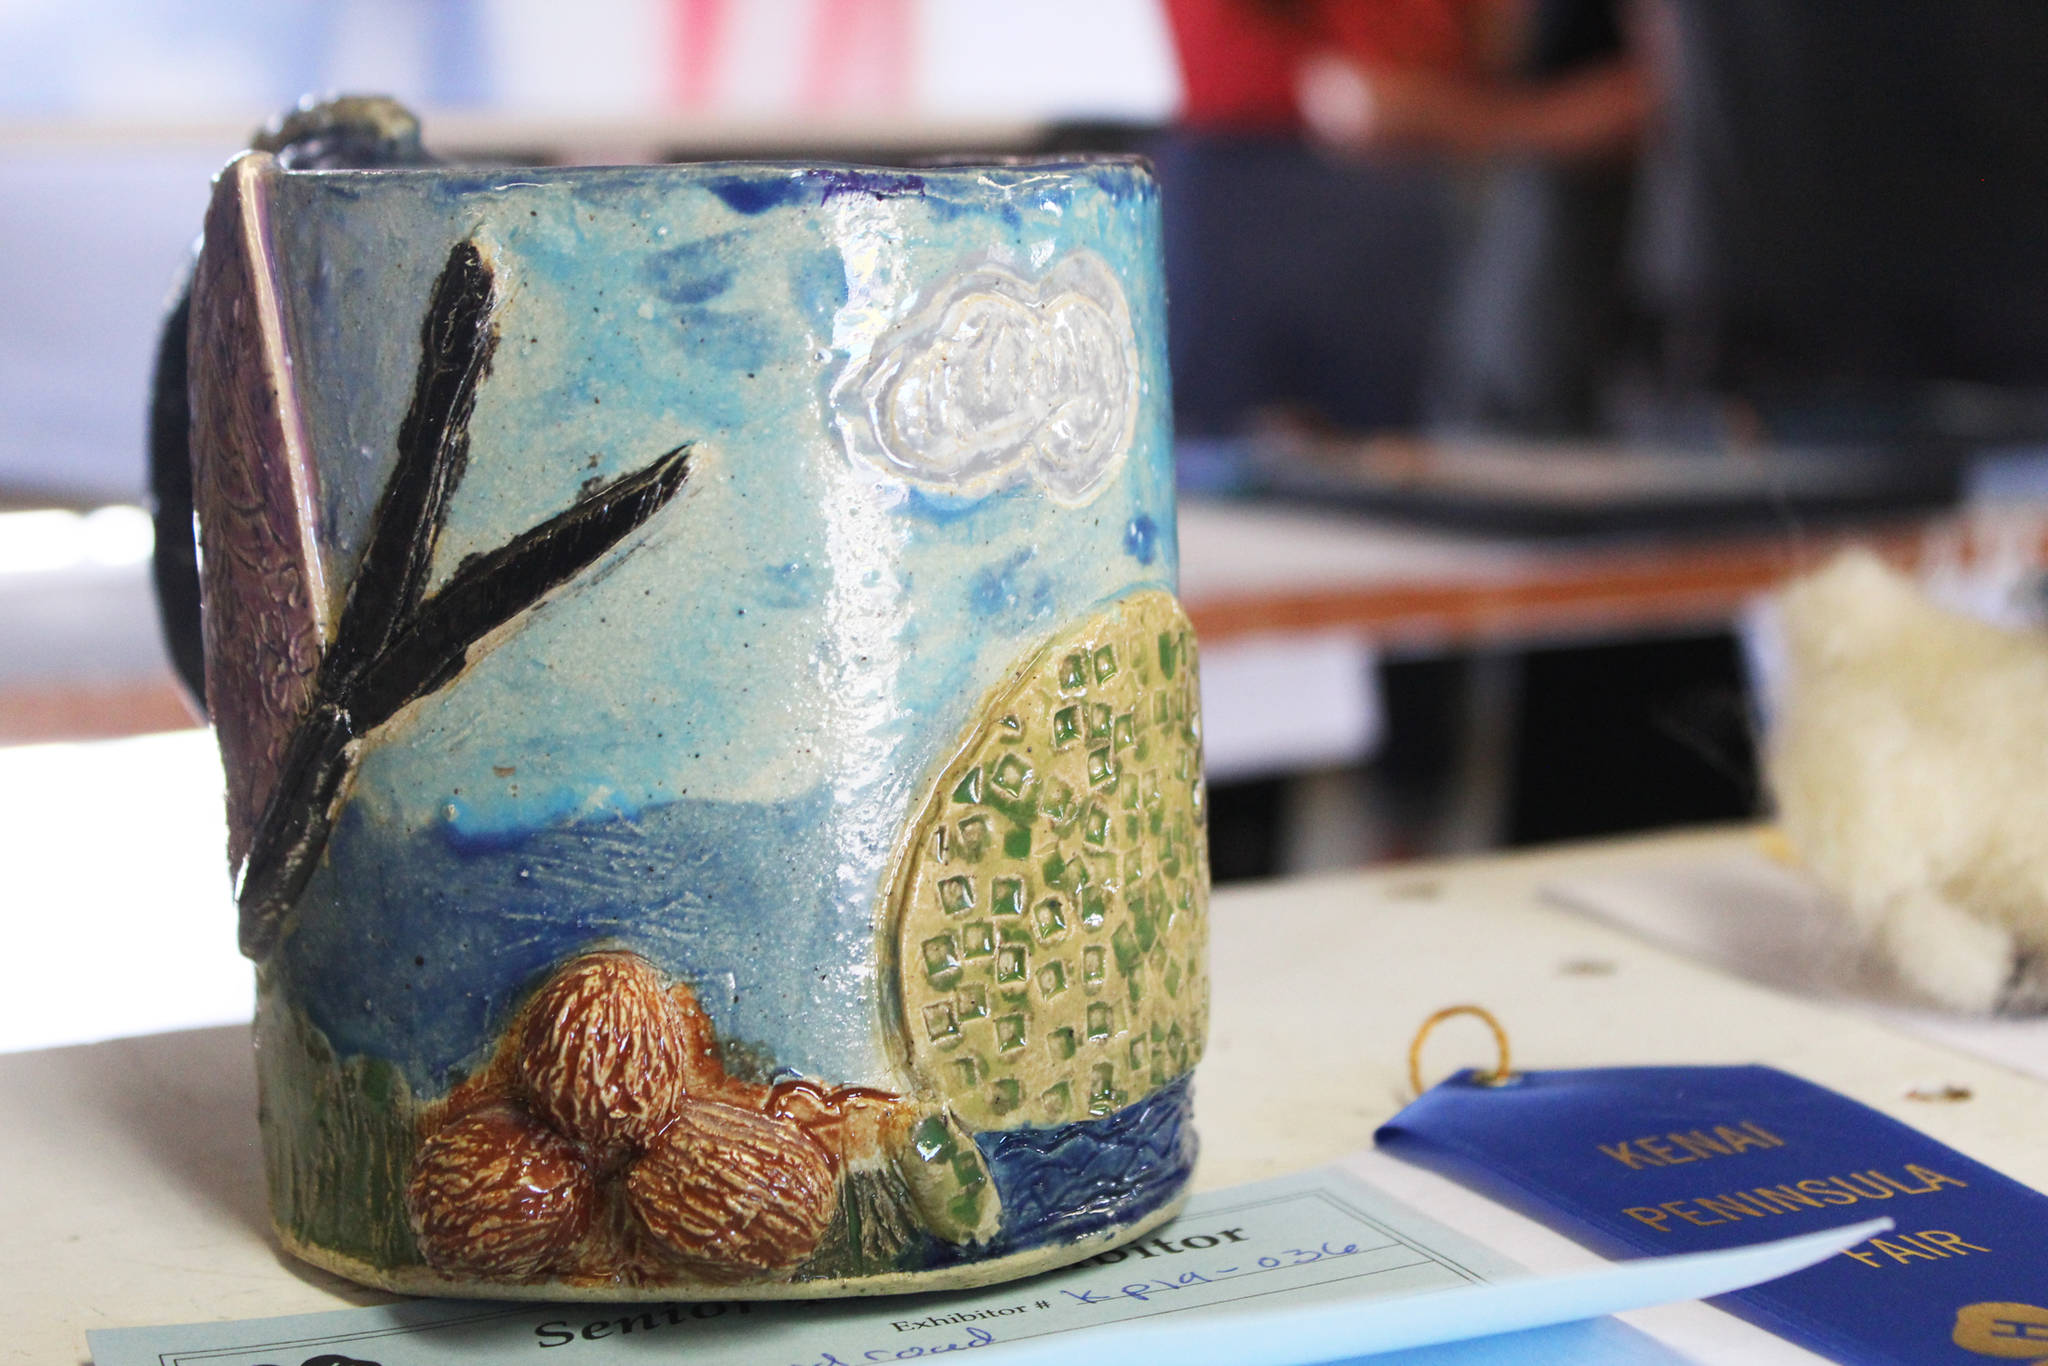 A ceramic mug created by a fair participant rests on a shelf in the exhibit hall Friday, Aug. 16, 2019 at the Kenai Peninsula Fair in Ninilchik, Alaska. (Photo by Megan Pacer/Homer News)